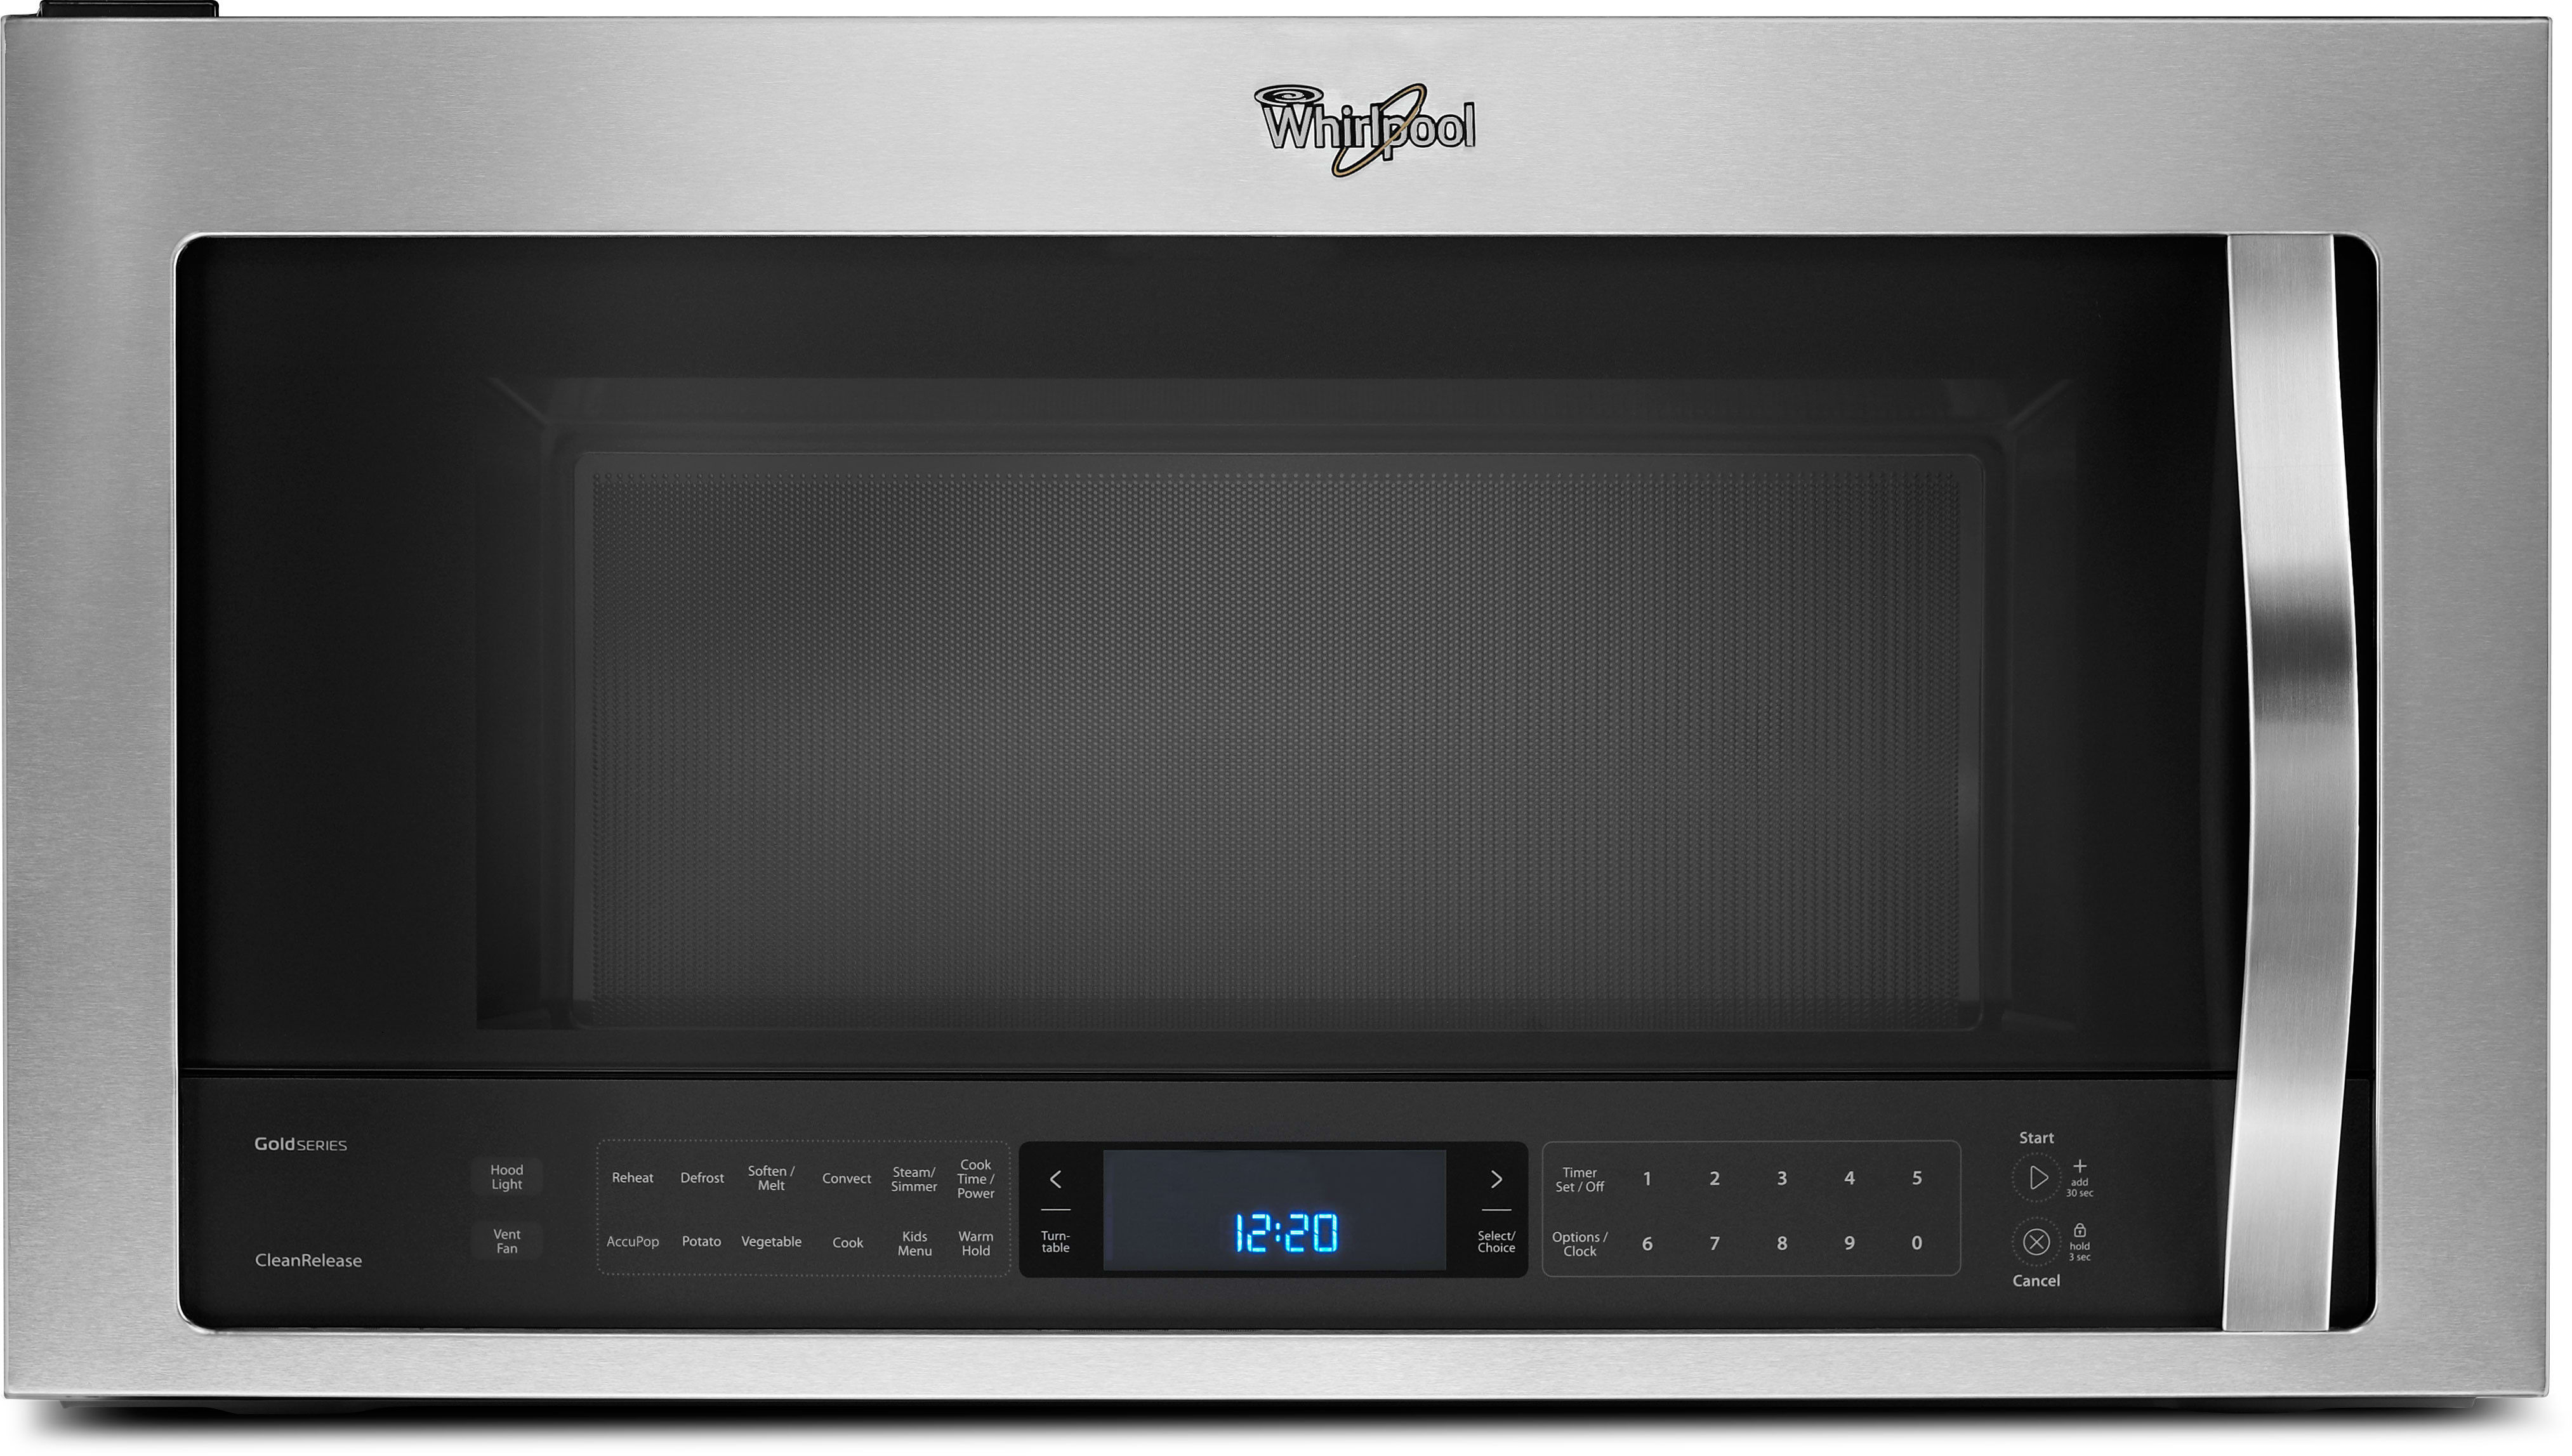 Whirlpool white ice otr microwave - Whirlpool Wmh76719c 1 9 Cu Ft Over The Range Microwave Oven With 400 Cfm Venting System True Convection Steam Sensor Cooking Steam Clean